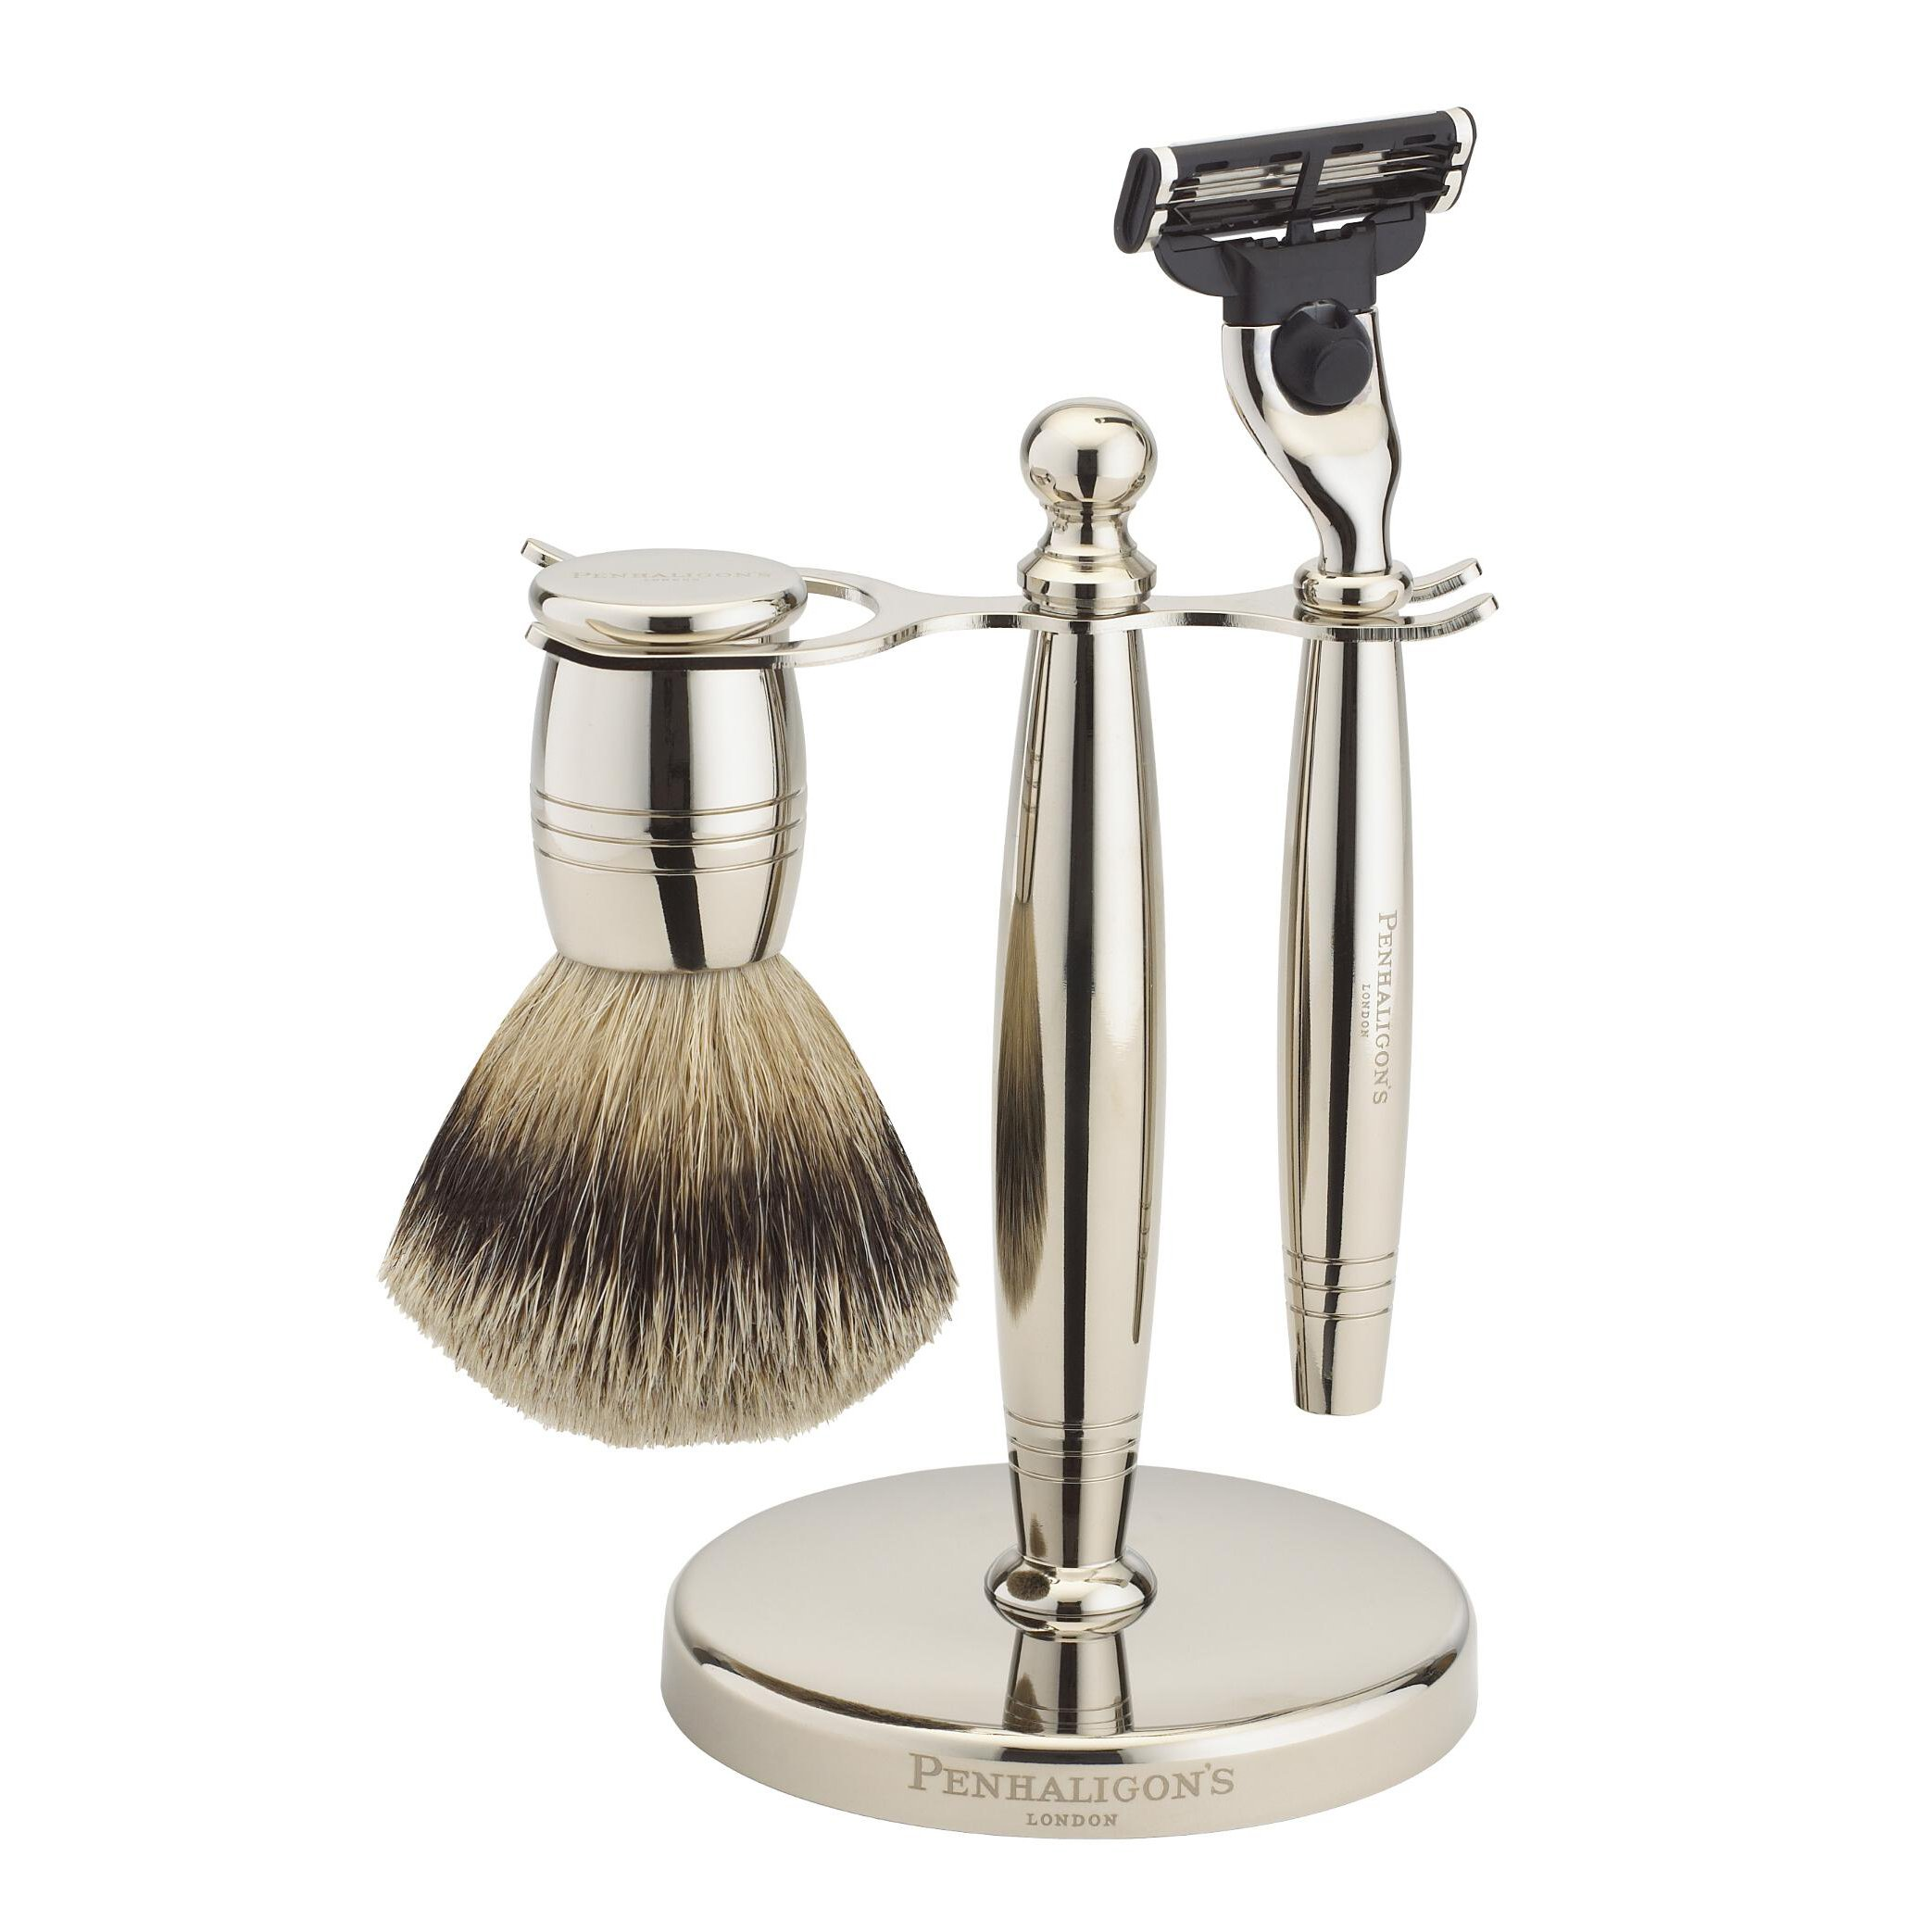 Penhaligon's Nickel Shaving Set: Razor + Brush + Stand + Bag 3pcs+1bag